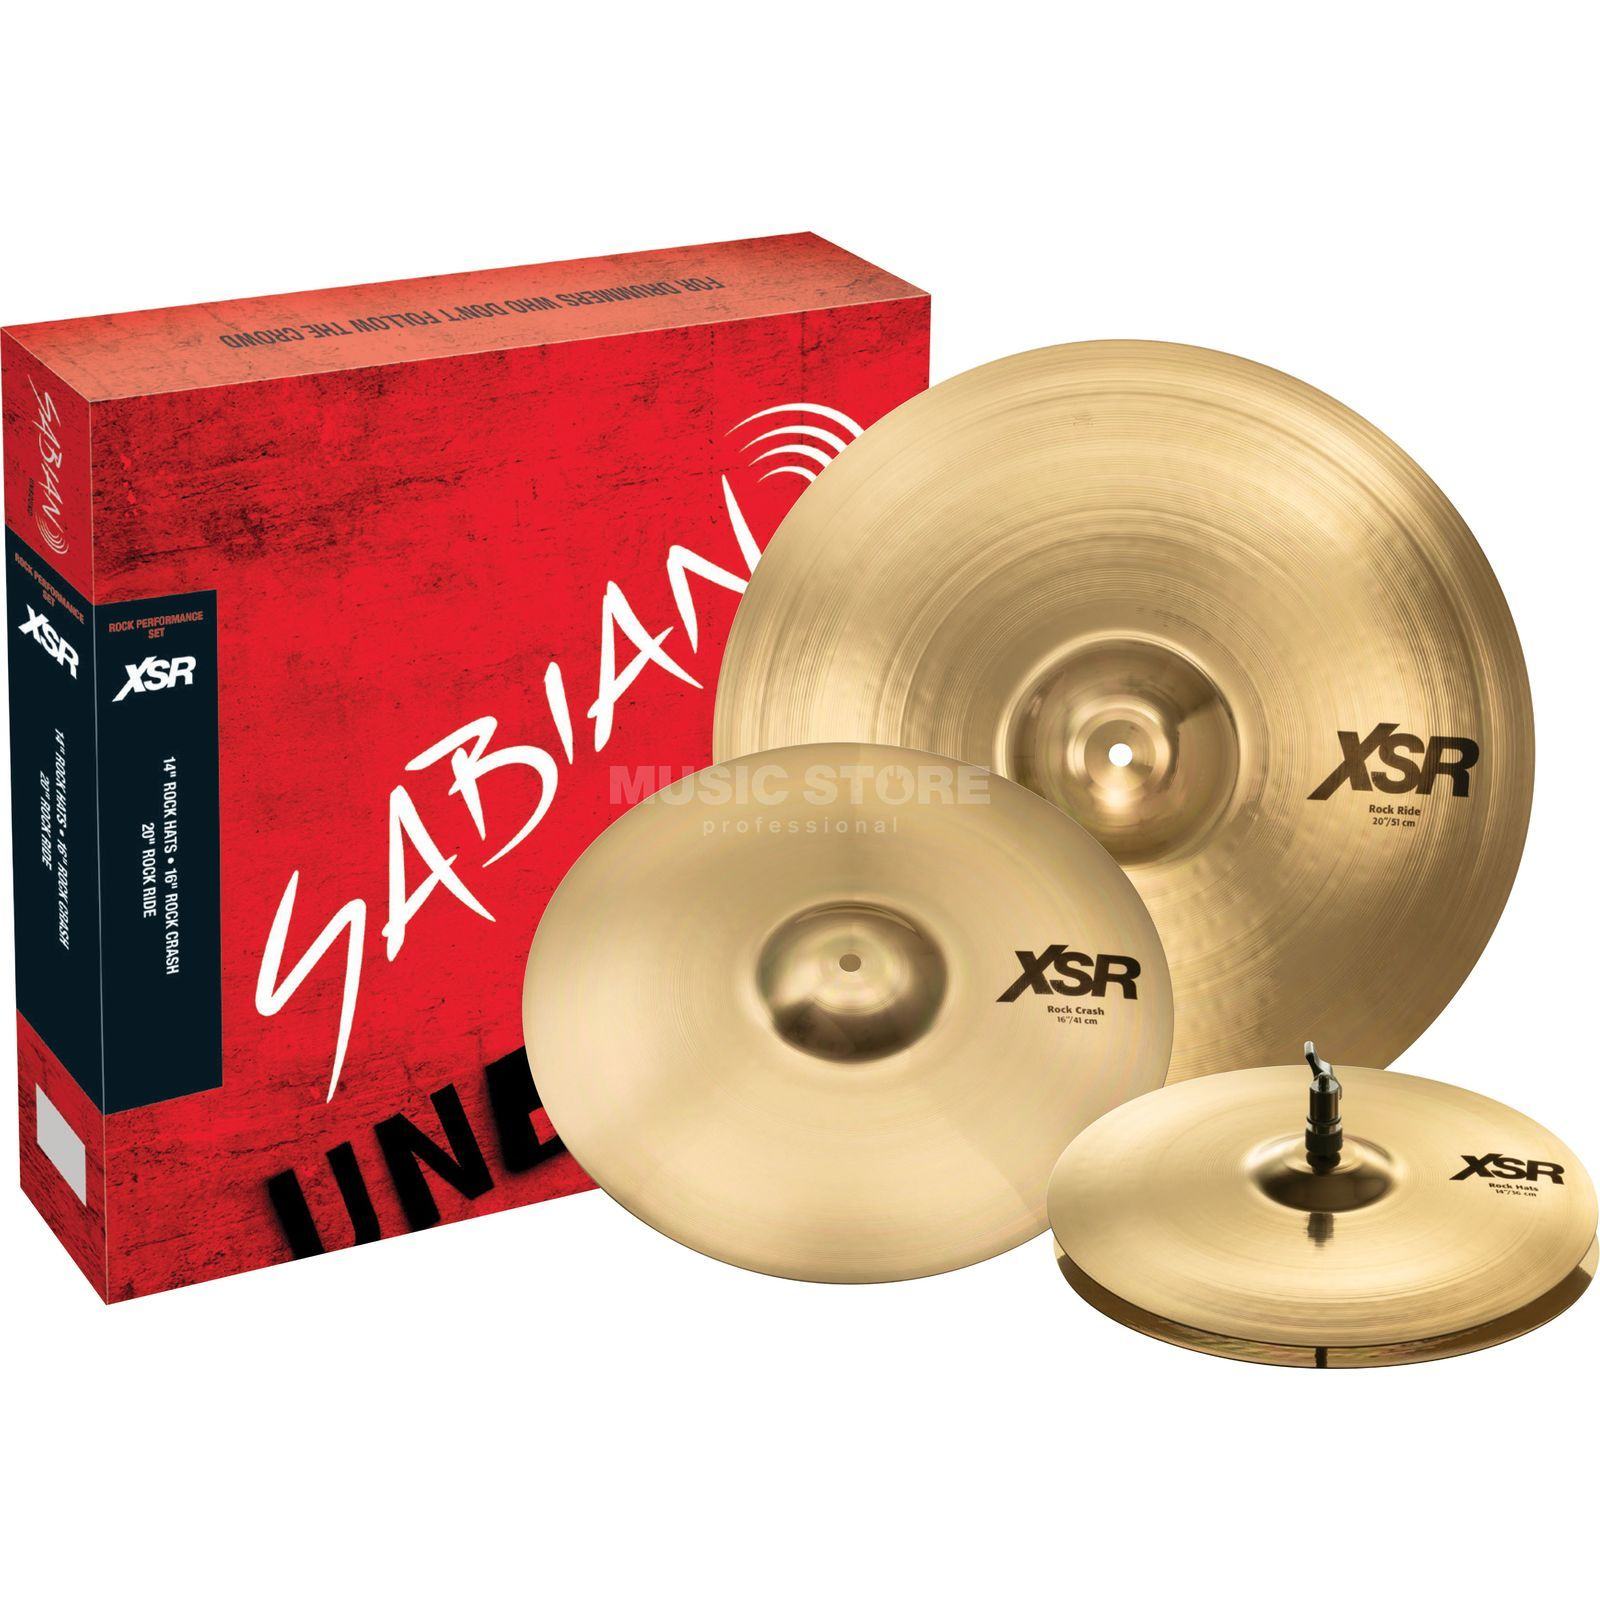 Sabian XSR Rock Performance Set Image du produit